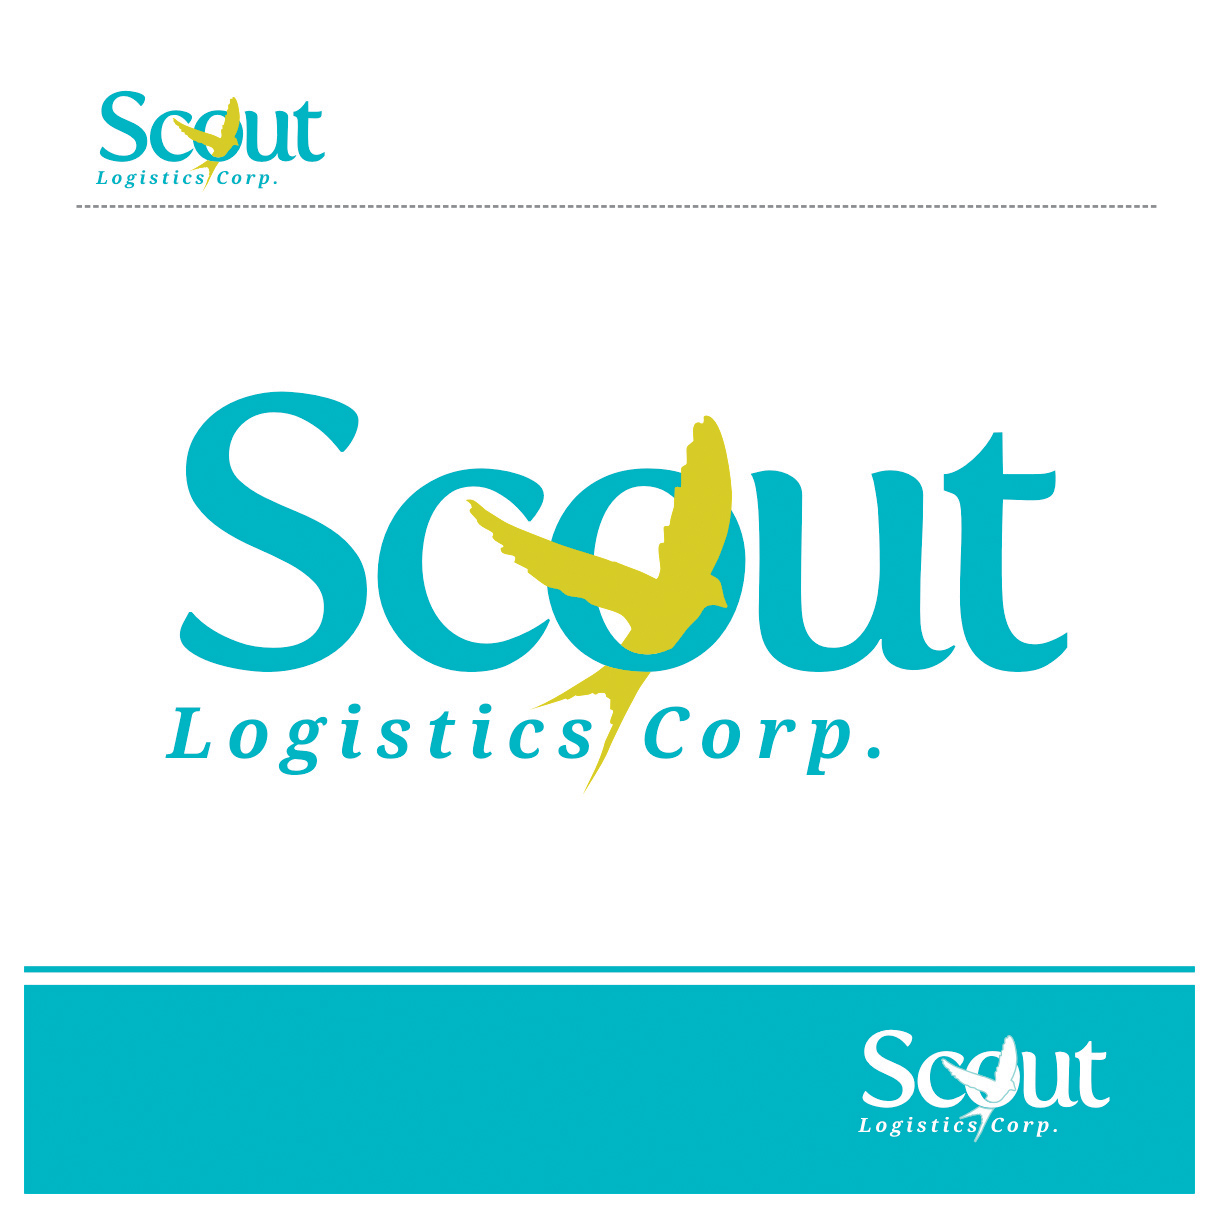 Print Design by Private User - Entry No. 2 in the Print Design Contest Creative Print Design for Scout Logistics Corporation.